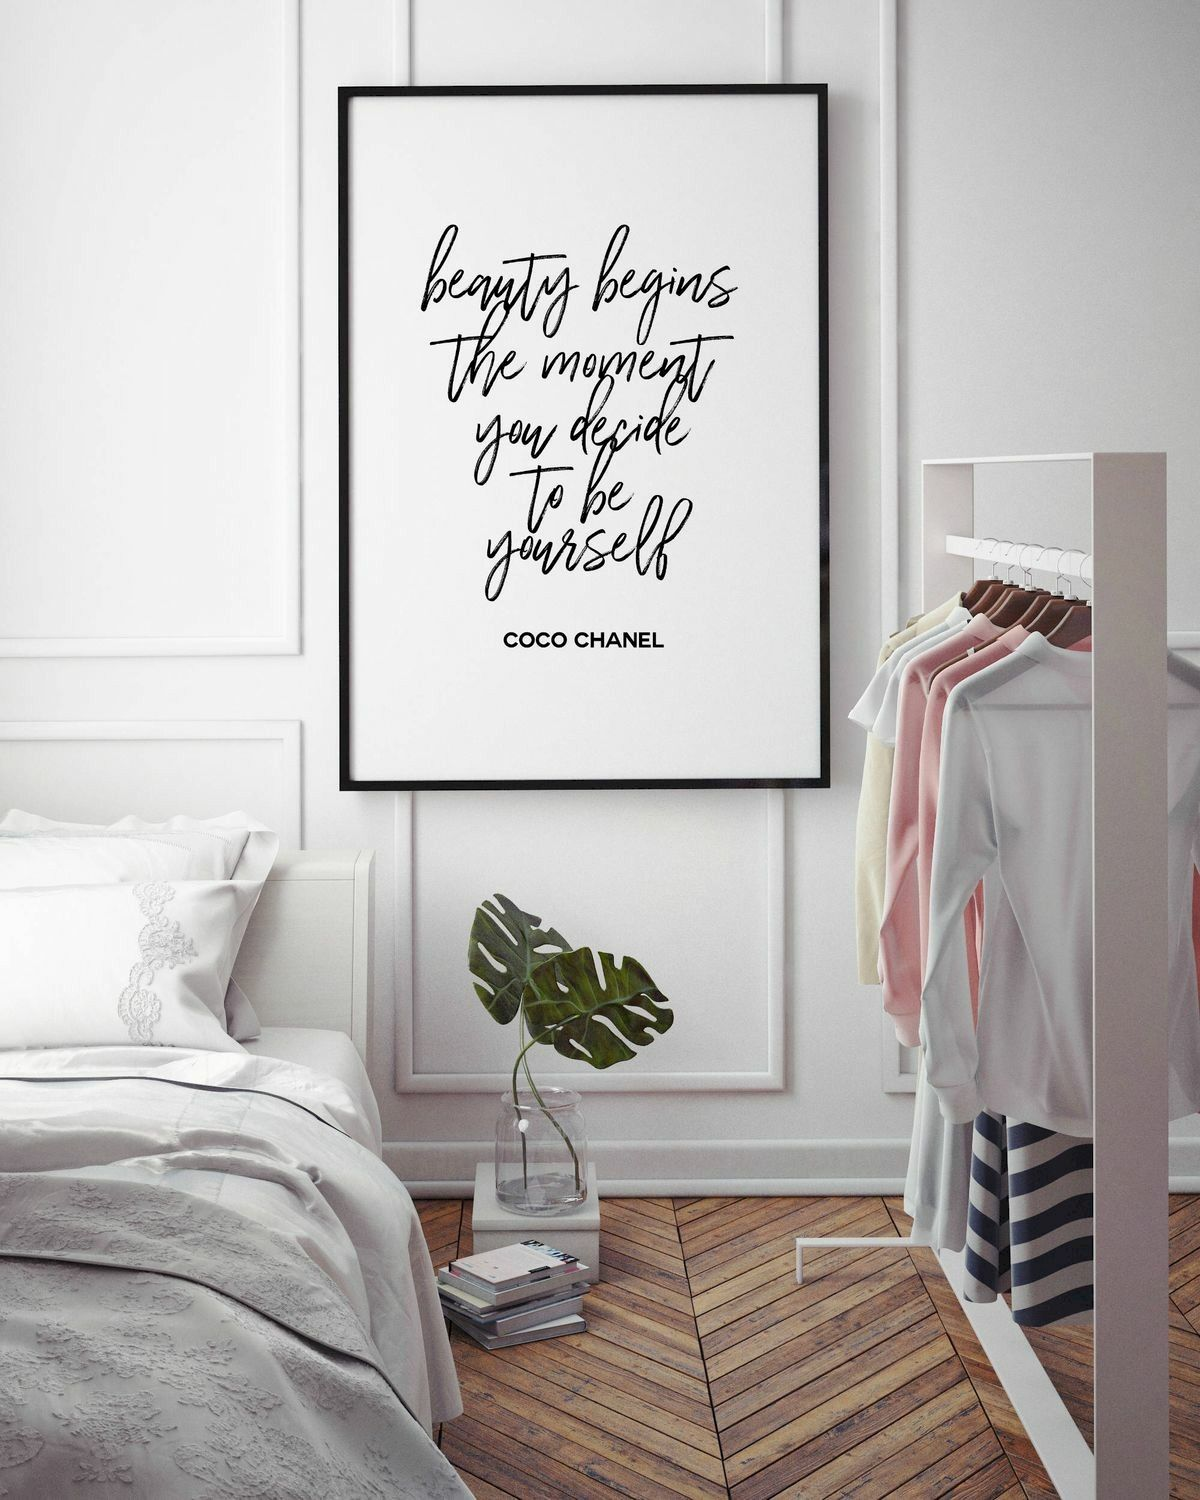 70 Simple Wall Bedroom Decor and Design Ideas (20)